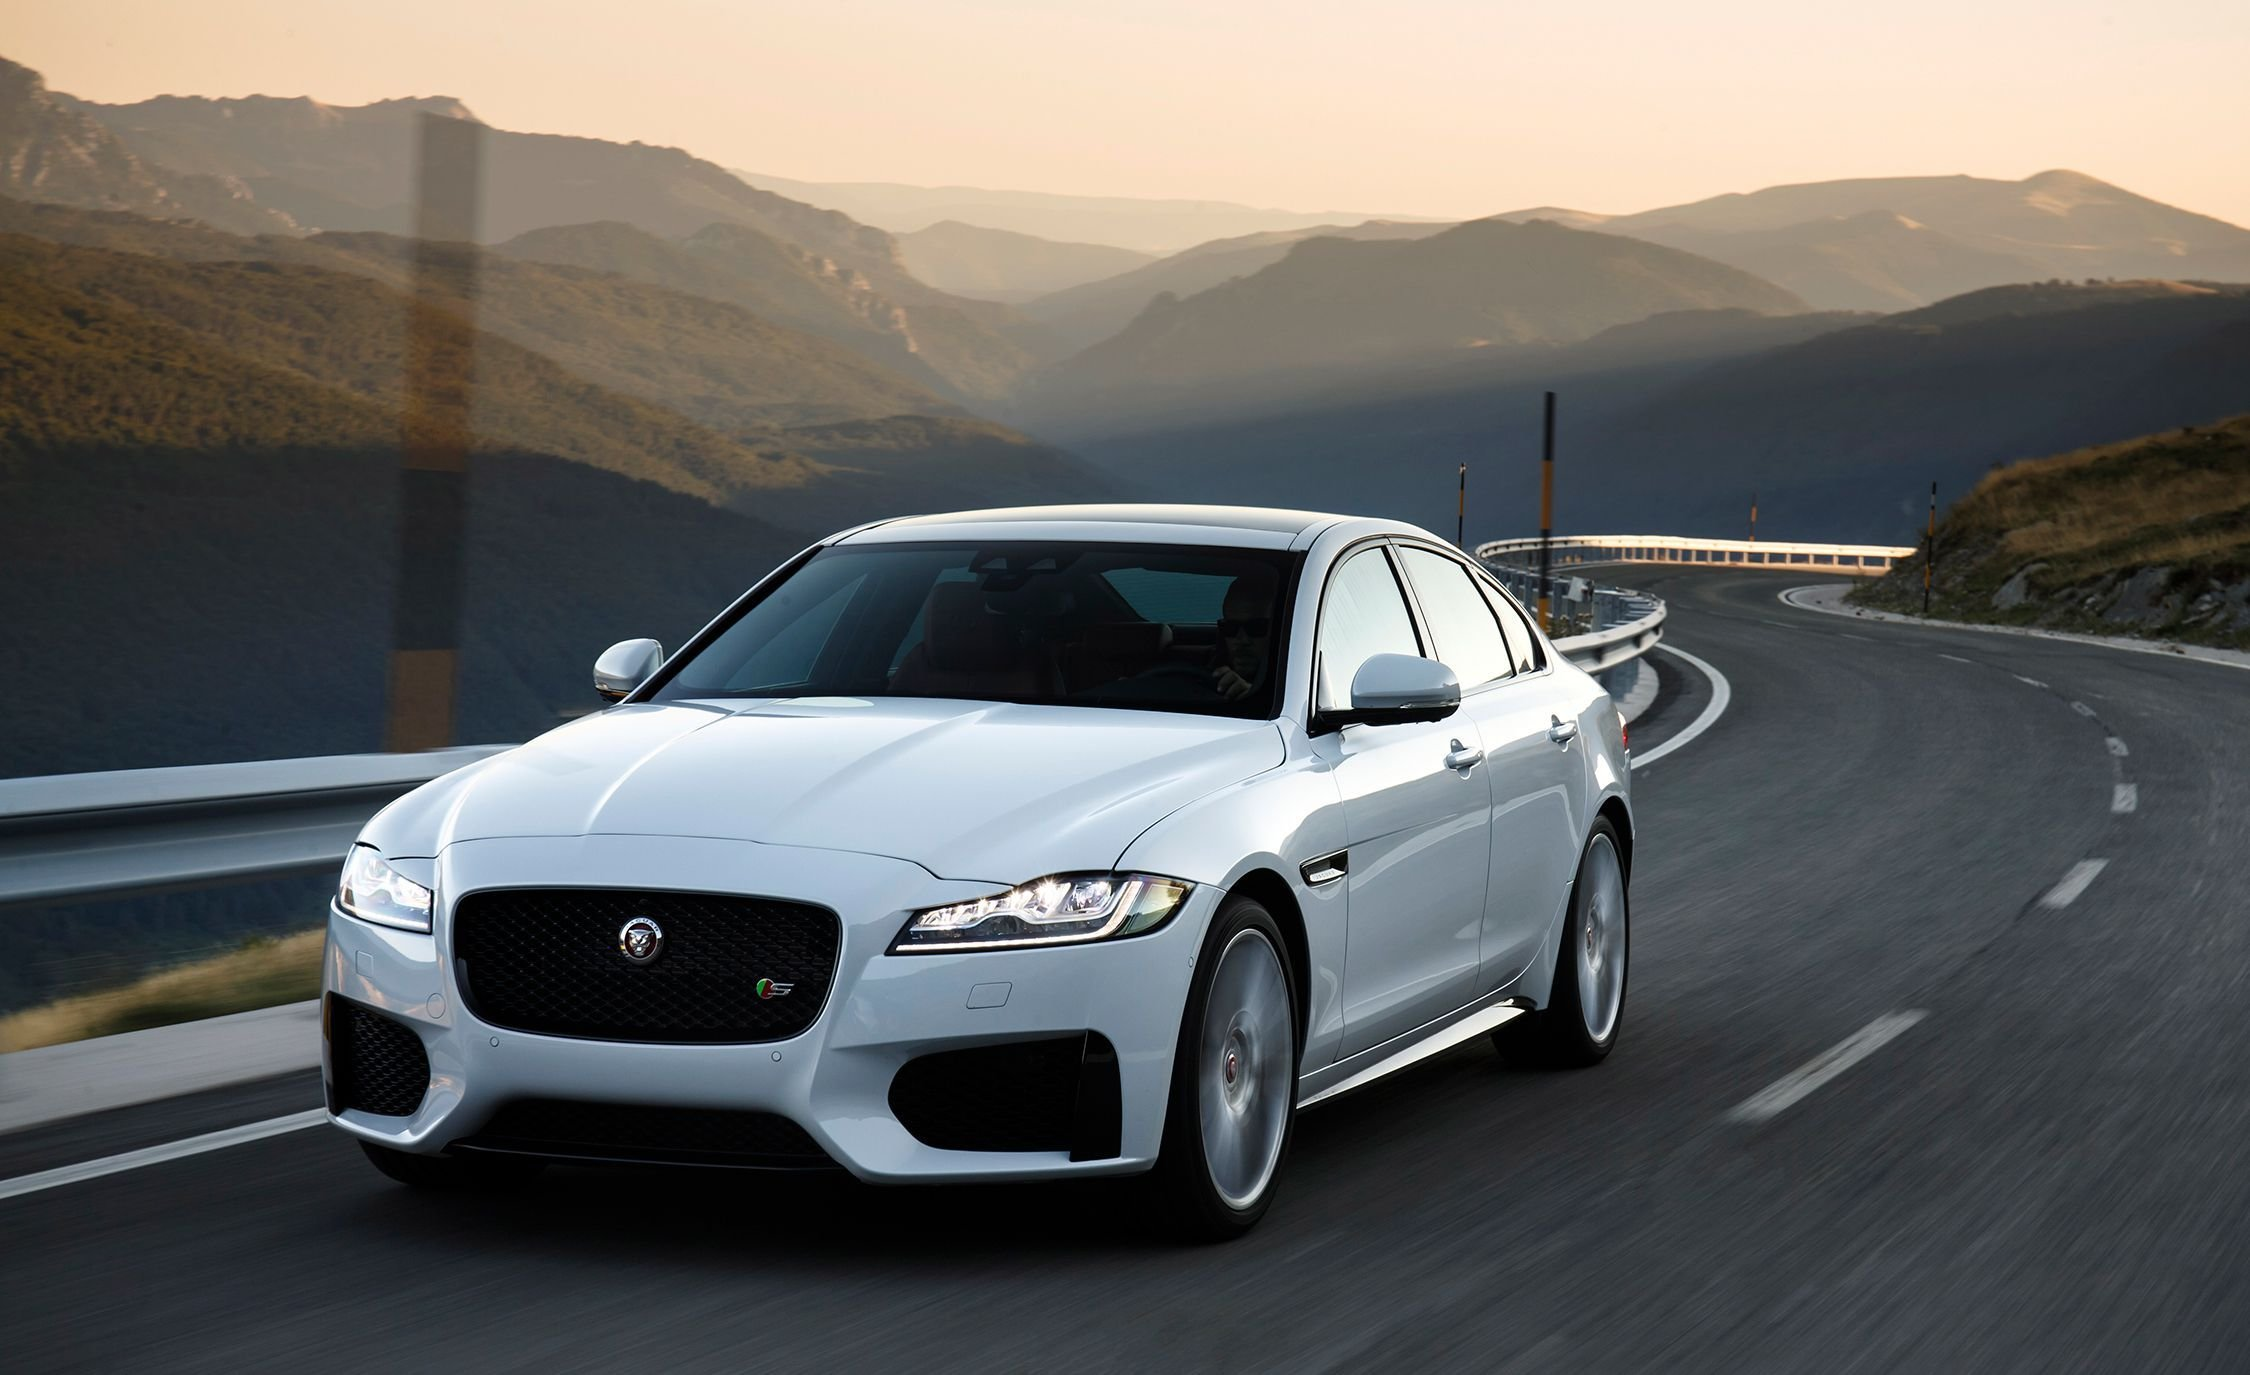 New 2018 Jaguar Xf Photos And Info News Car And Driver On This Month